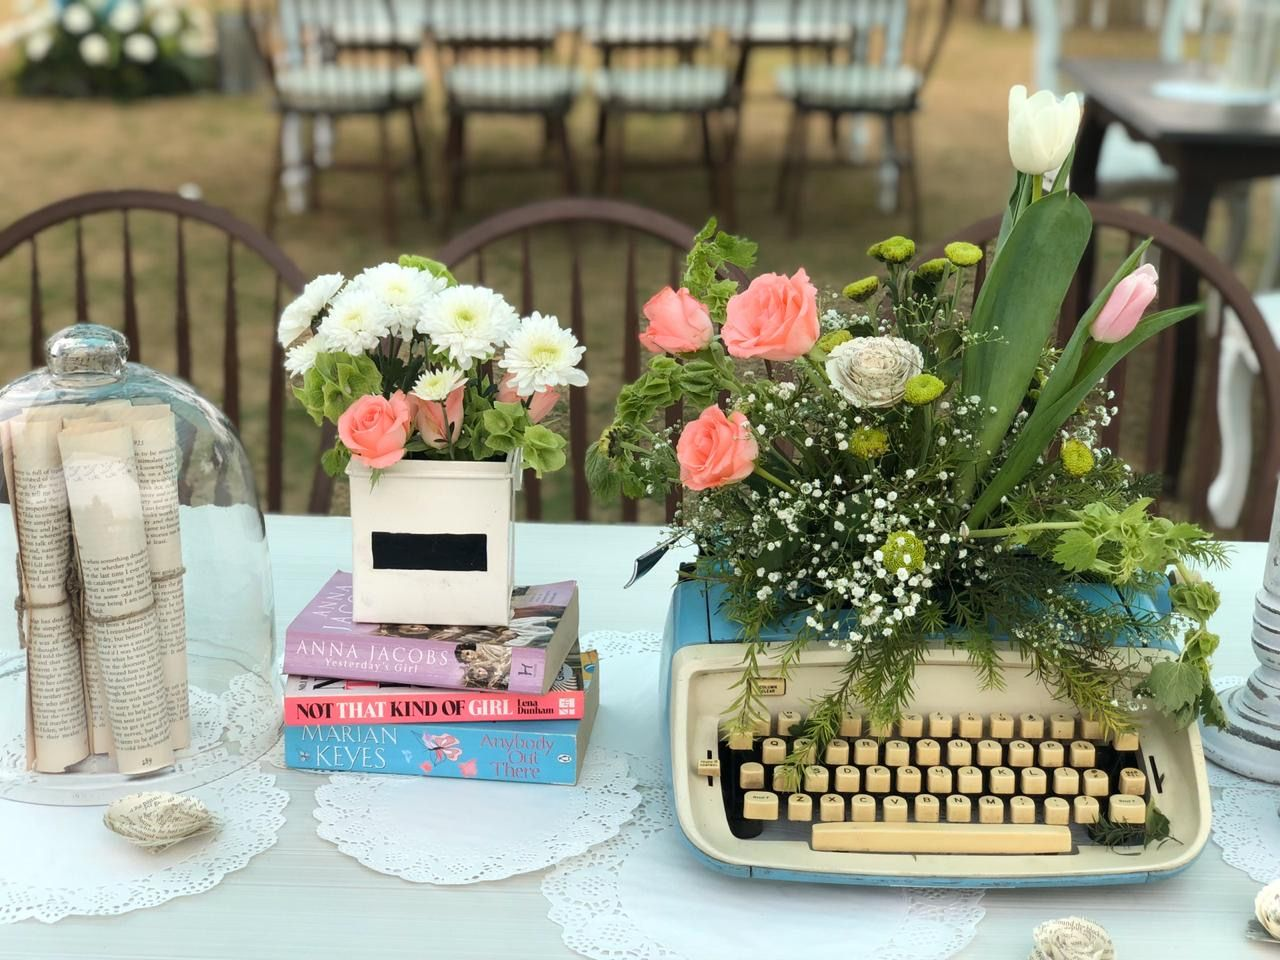 Breathtaking Vintage Theme Add-ons that We Spotted For Your Wedding, 3b06e50f d062 47c1 927c efebabf581df.jpg